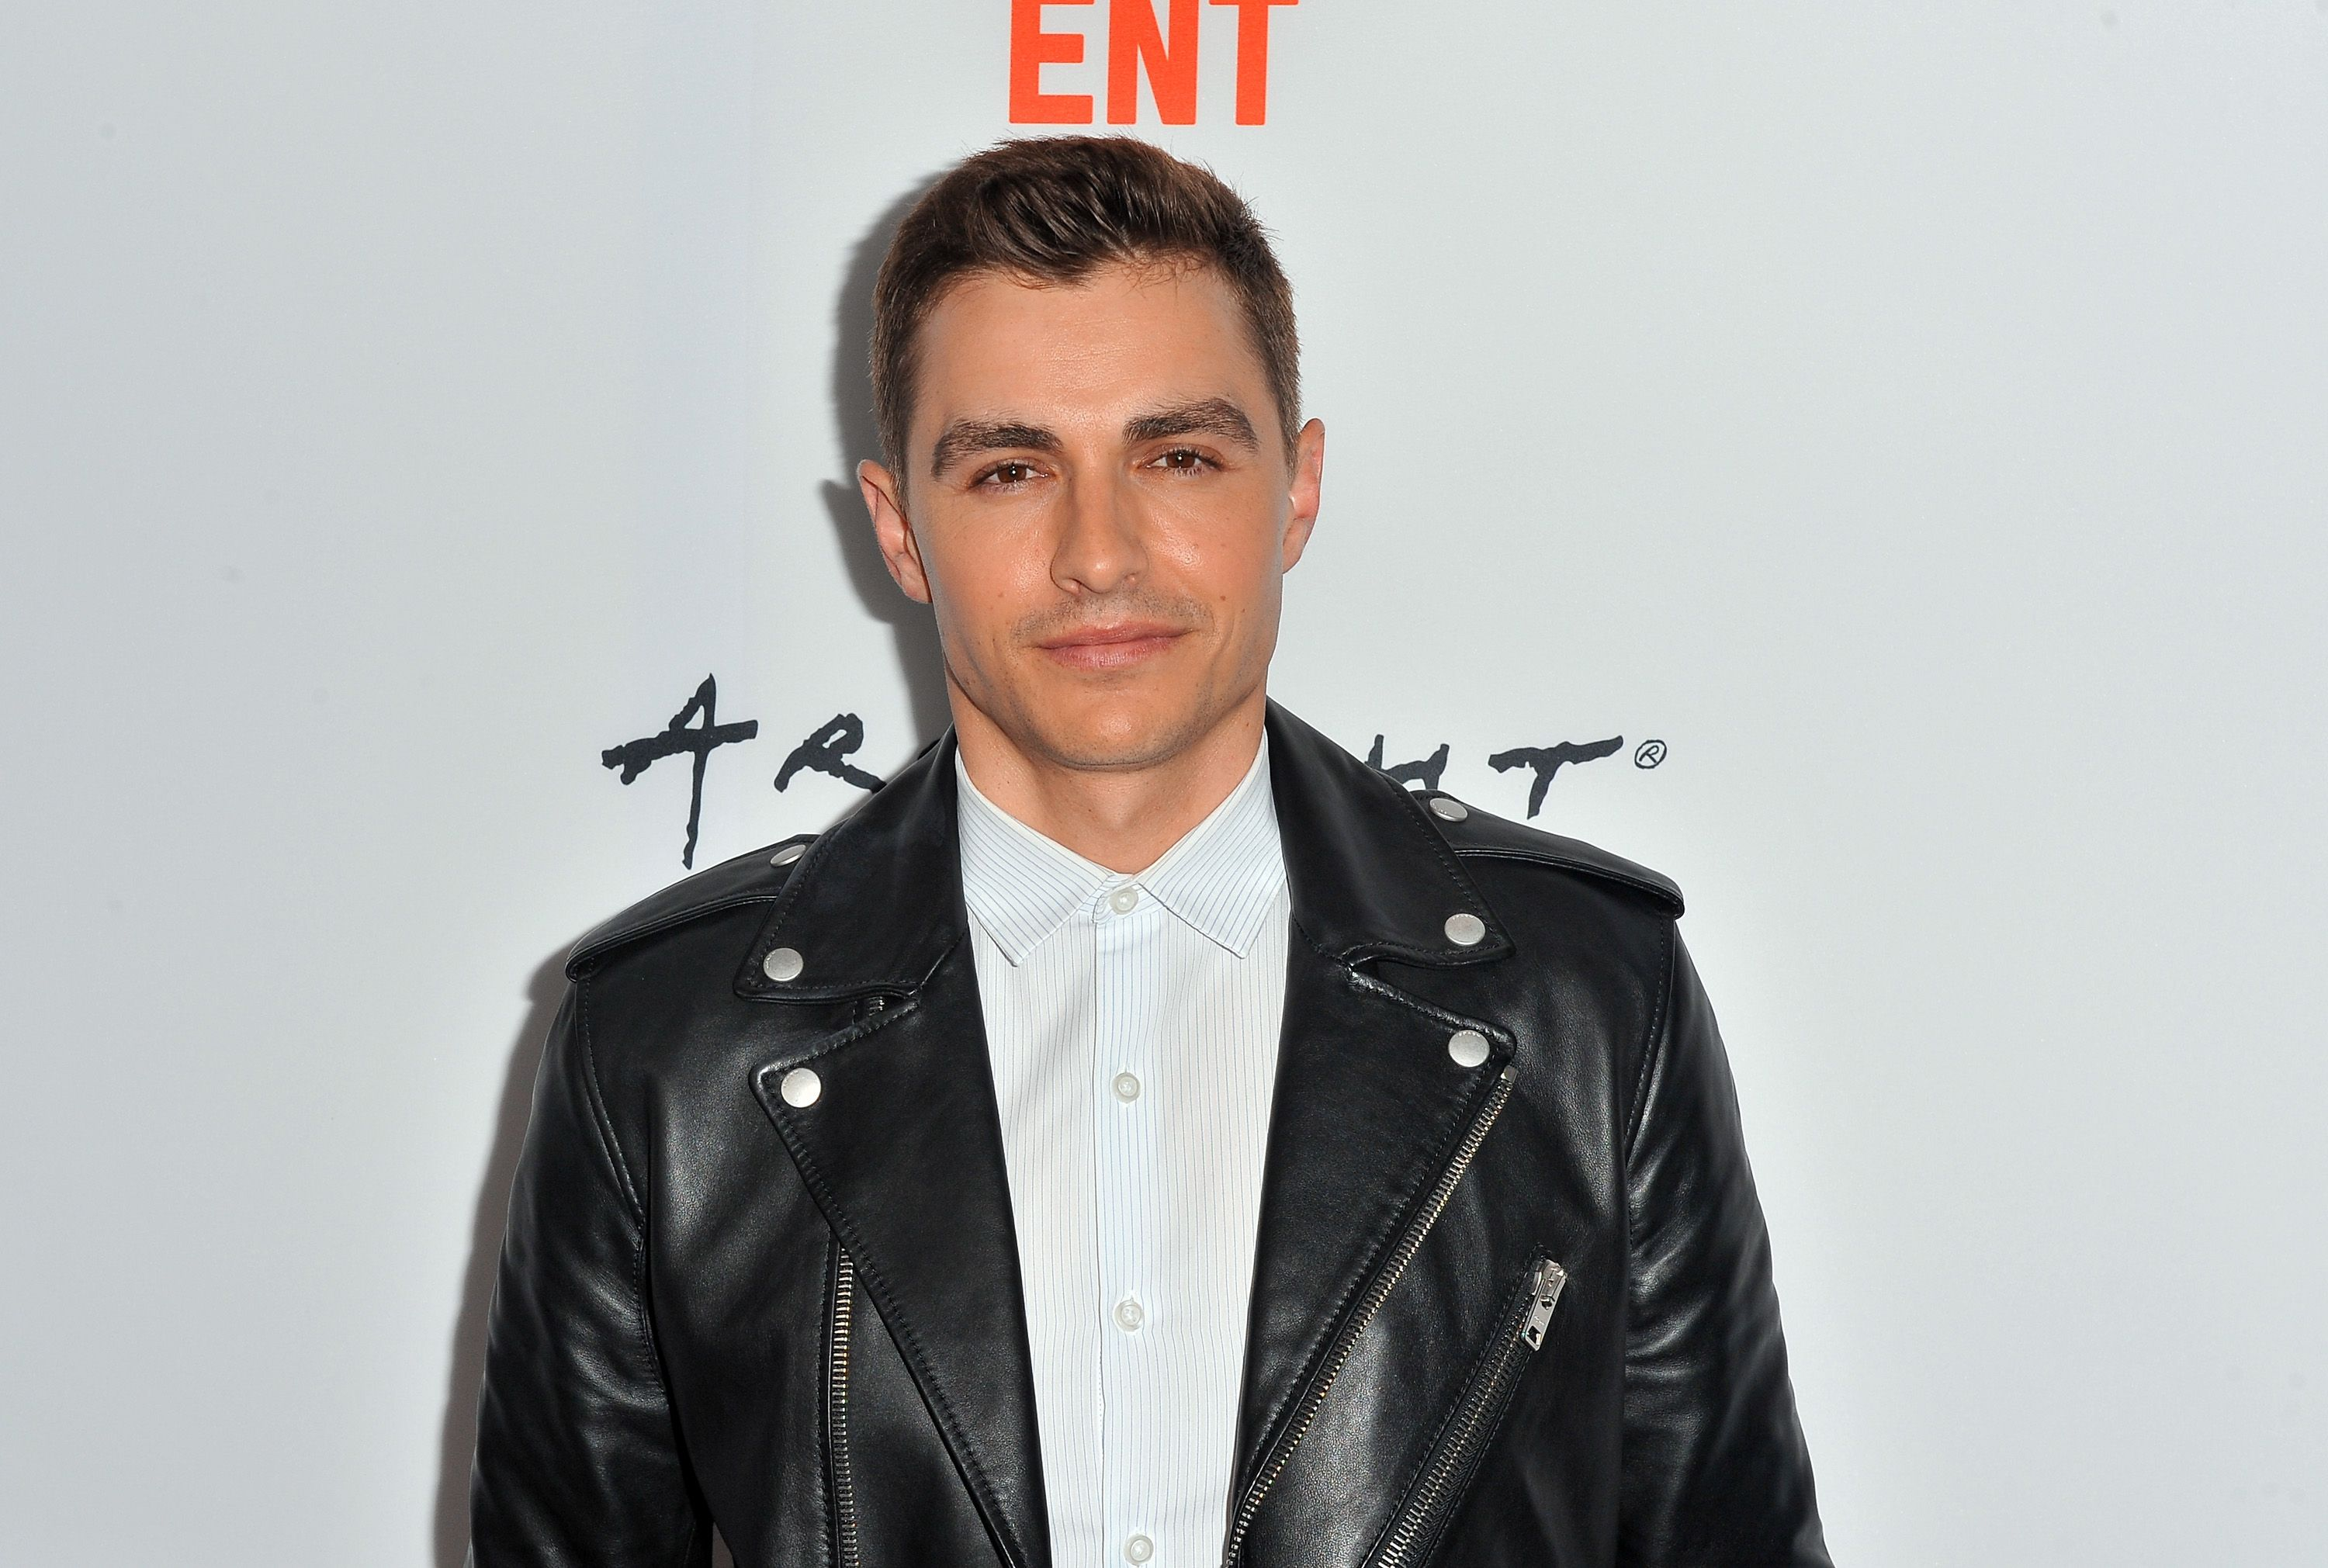 Dave Franco - Bio, Married, Wife, Age, Net Worth, Brother, Girlfriend, Is He Gay-1242